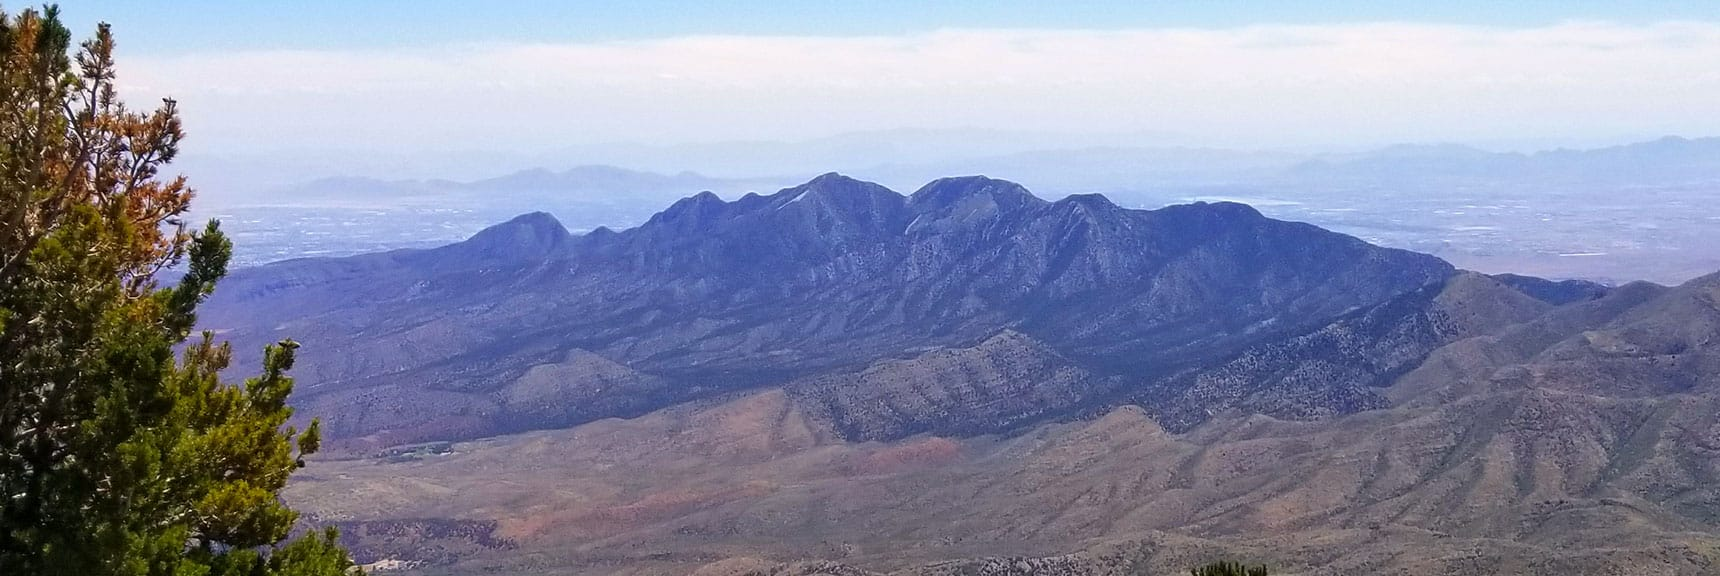 View of La Madre Mountains Wilderness from Harris Mountain Summit, Nevada